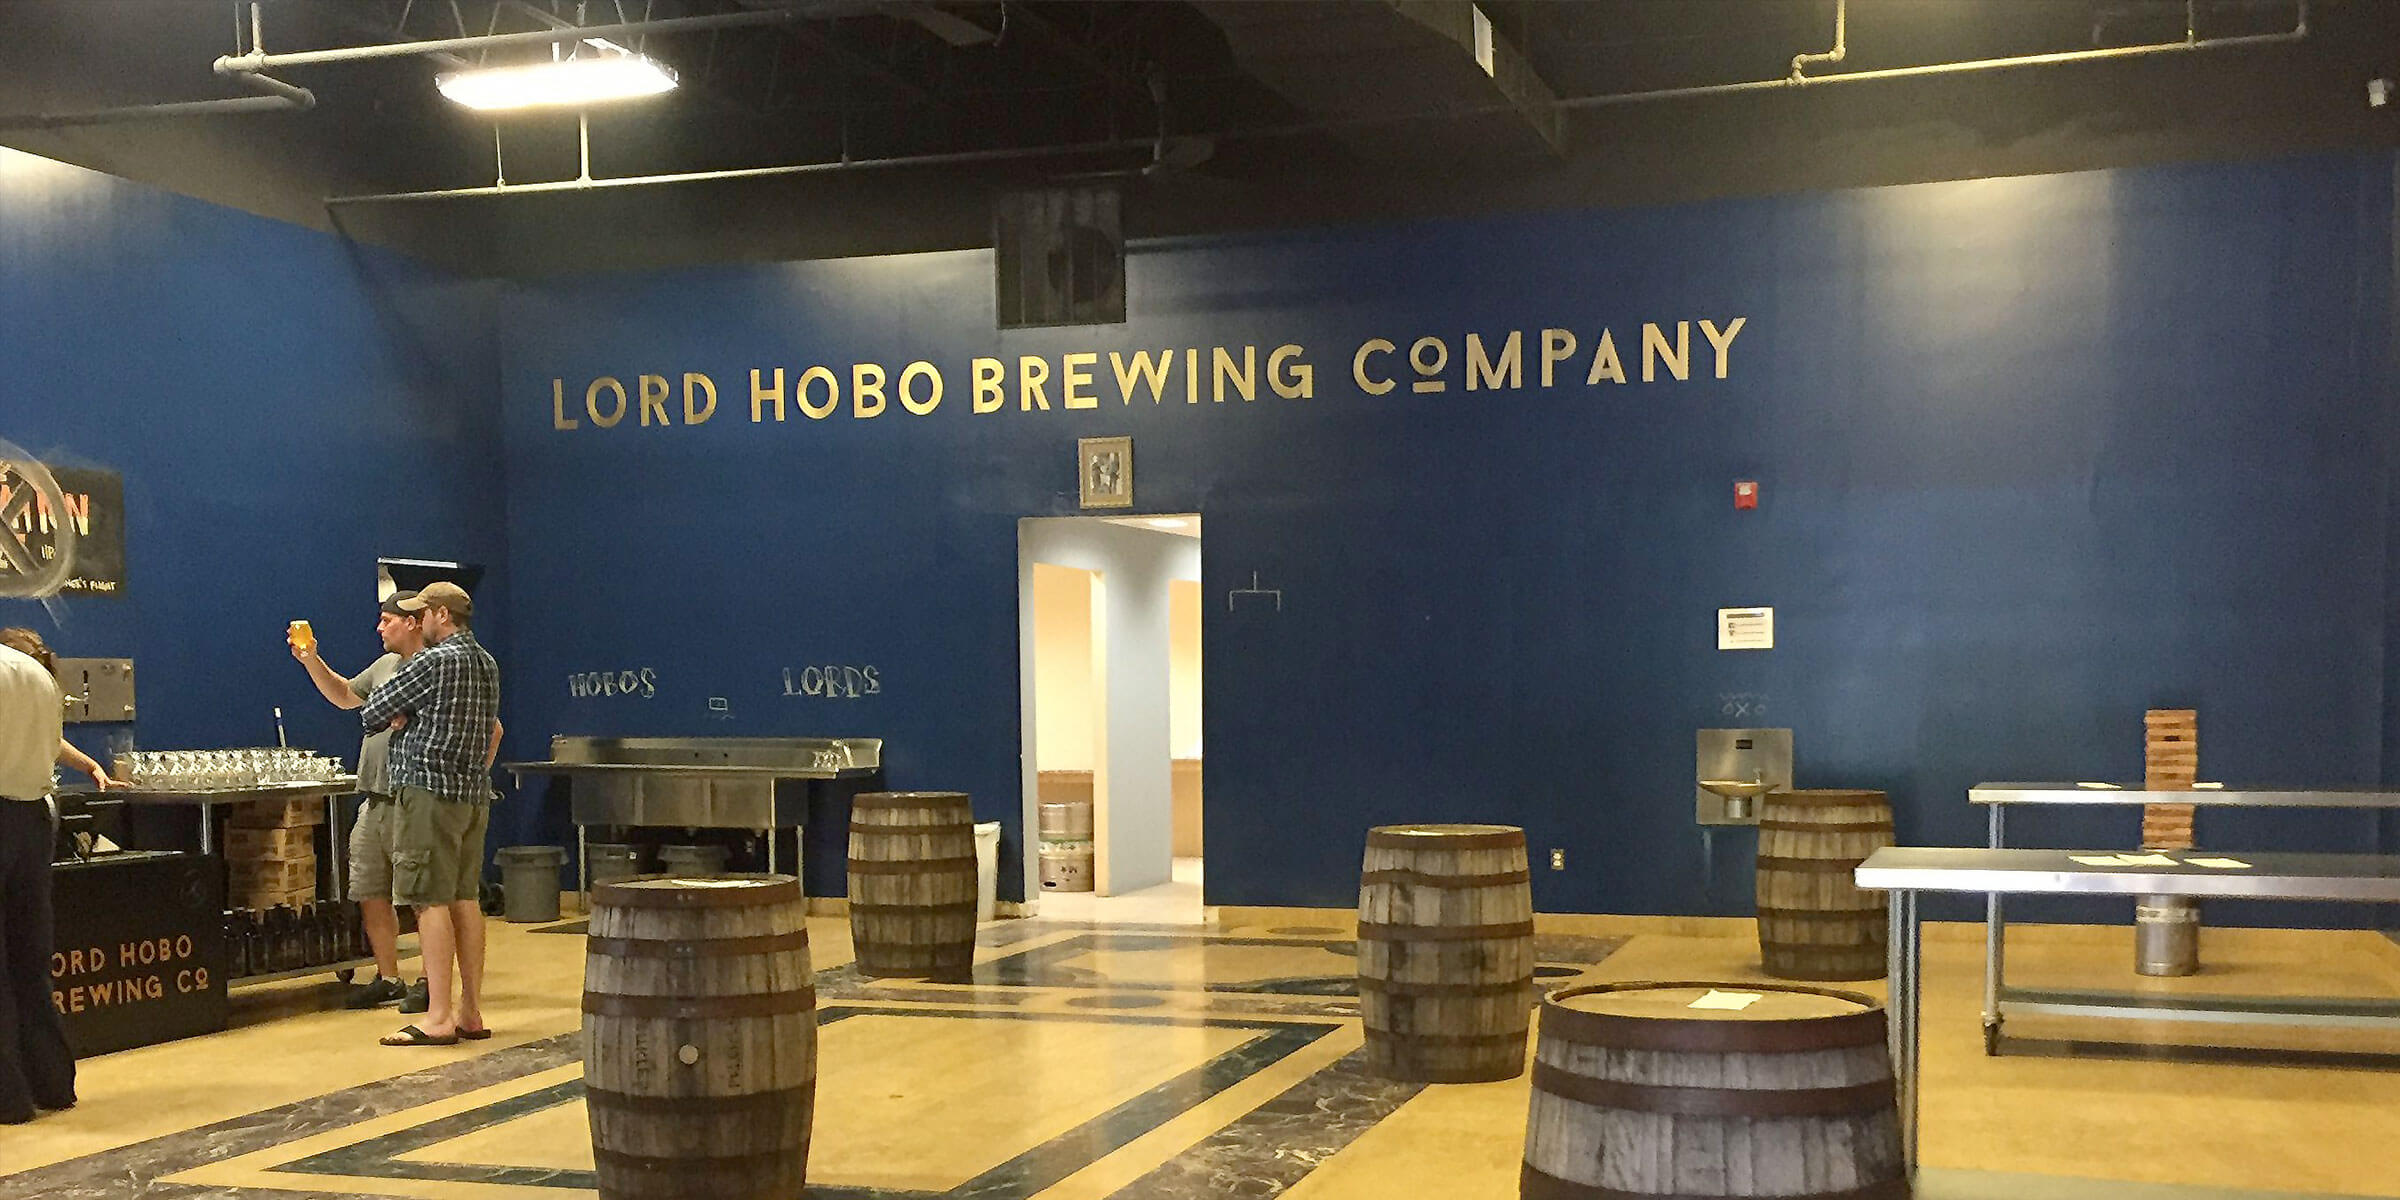 Inside the taproom at Lord Hobo Brewing Co. in Woburn, Massachusetts